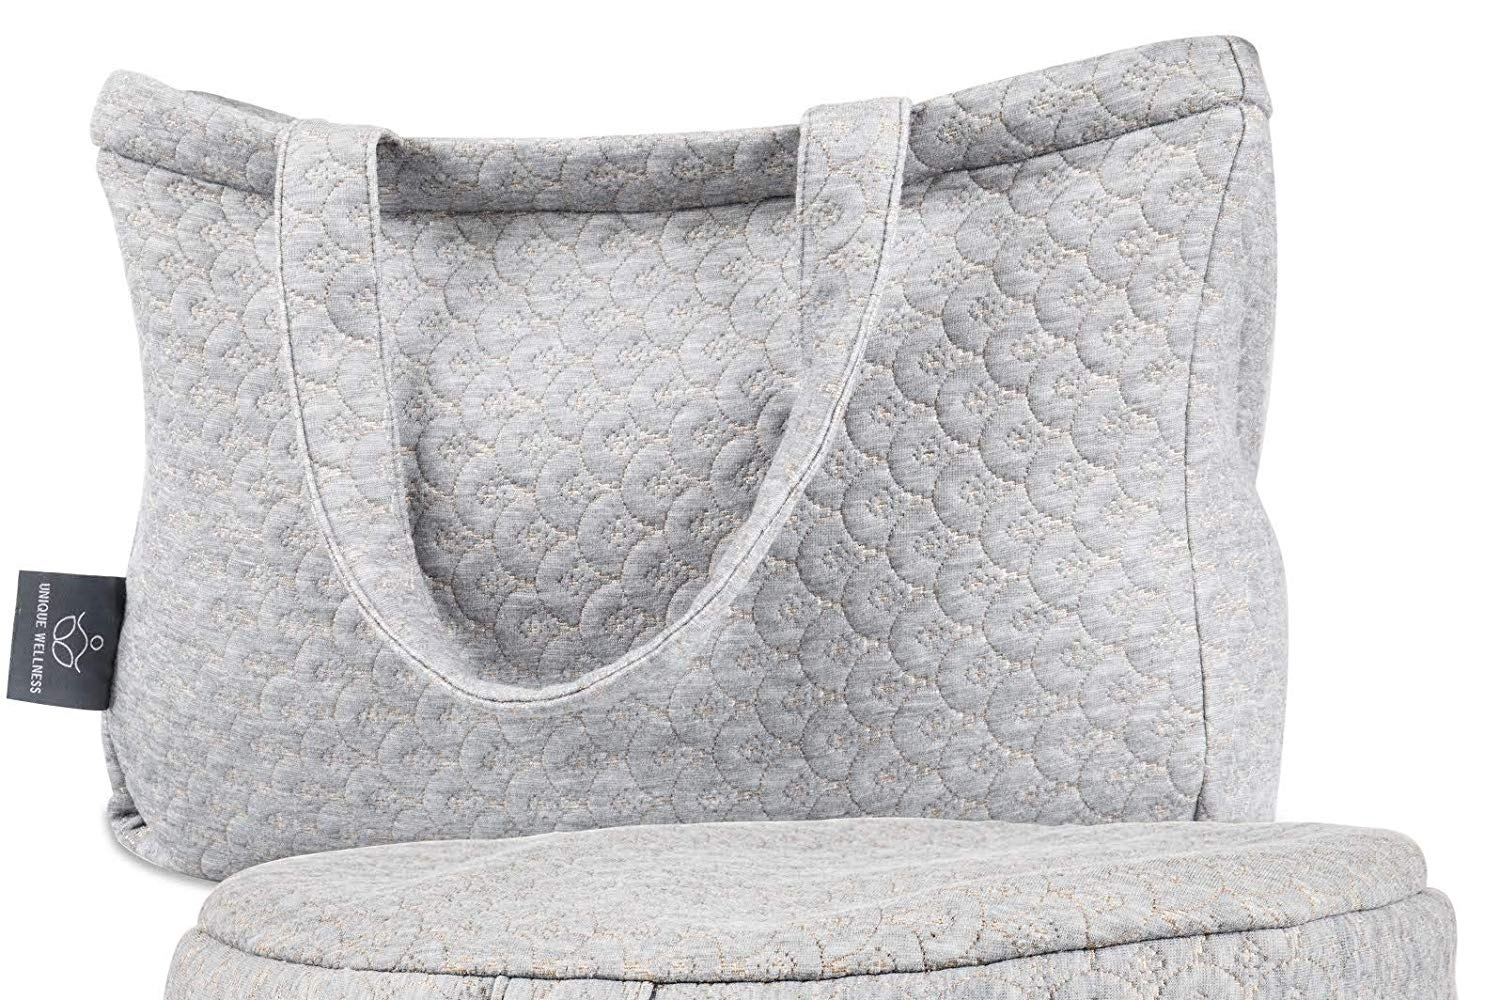 The 10 Best Meditation Pillows To Buy For Back Support Comfort I